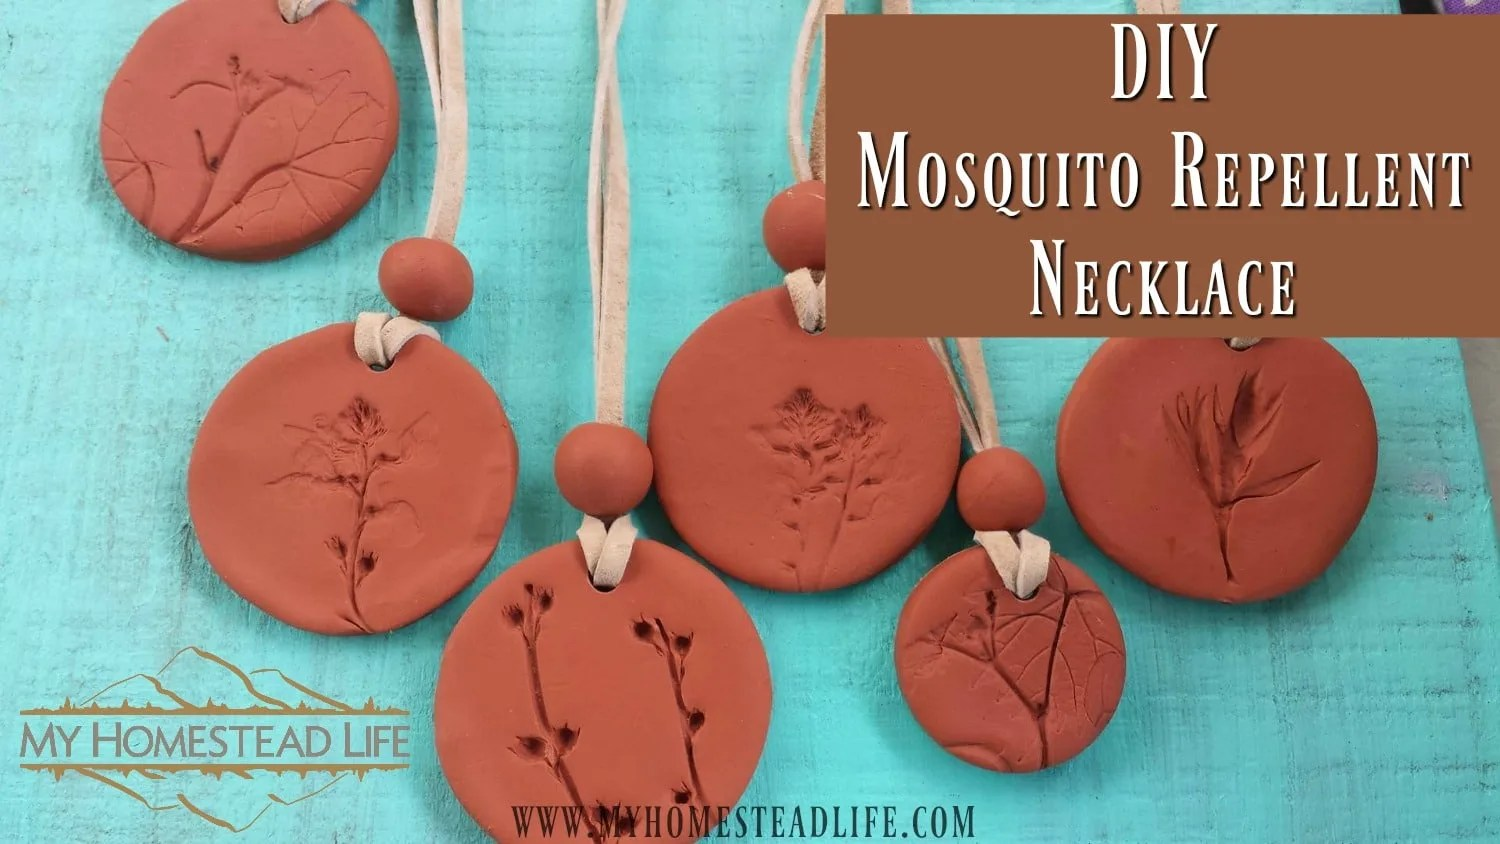 Terra cotta Mosquito Repellent Necklace, beautiful and effective! Image used with permission.